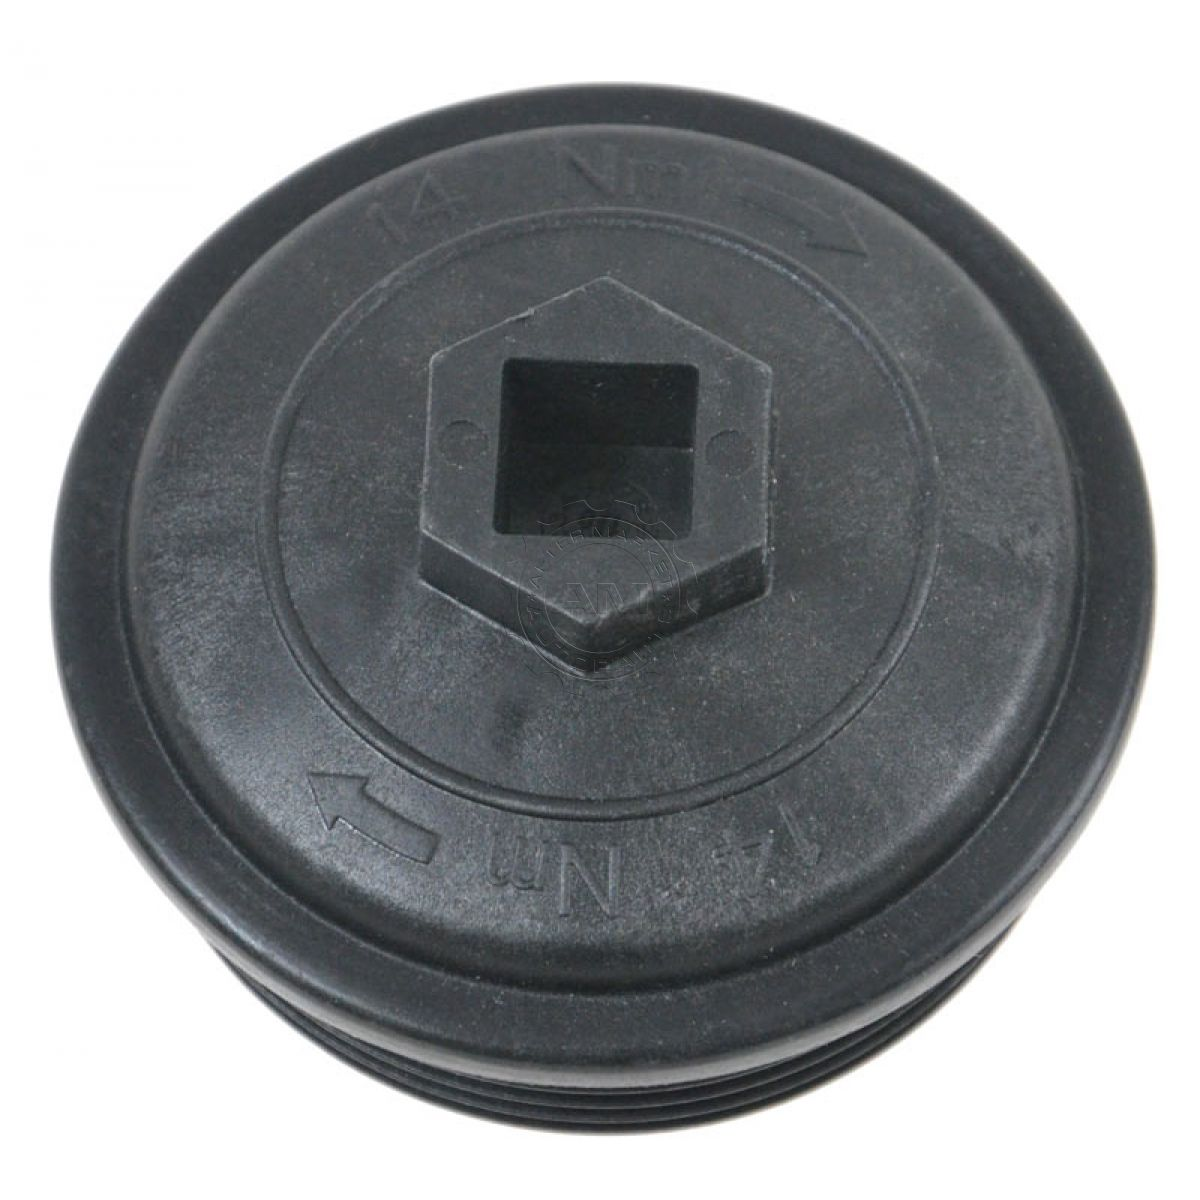 hight resolution of dorman fuel filter cap cover for ford f250 f350 f450 f550 excursion 6 0l diesel